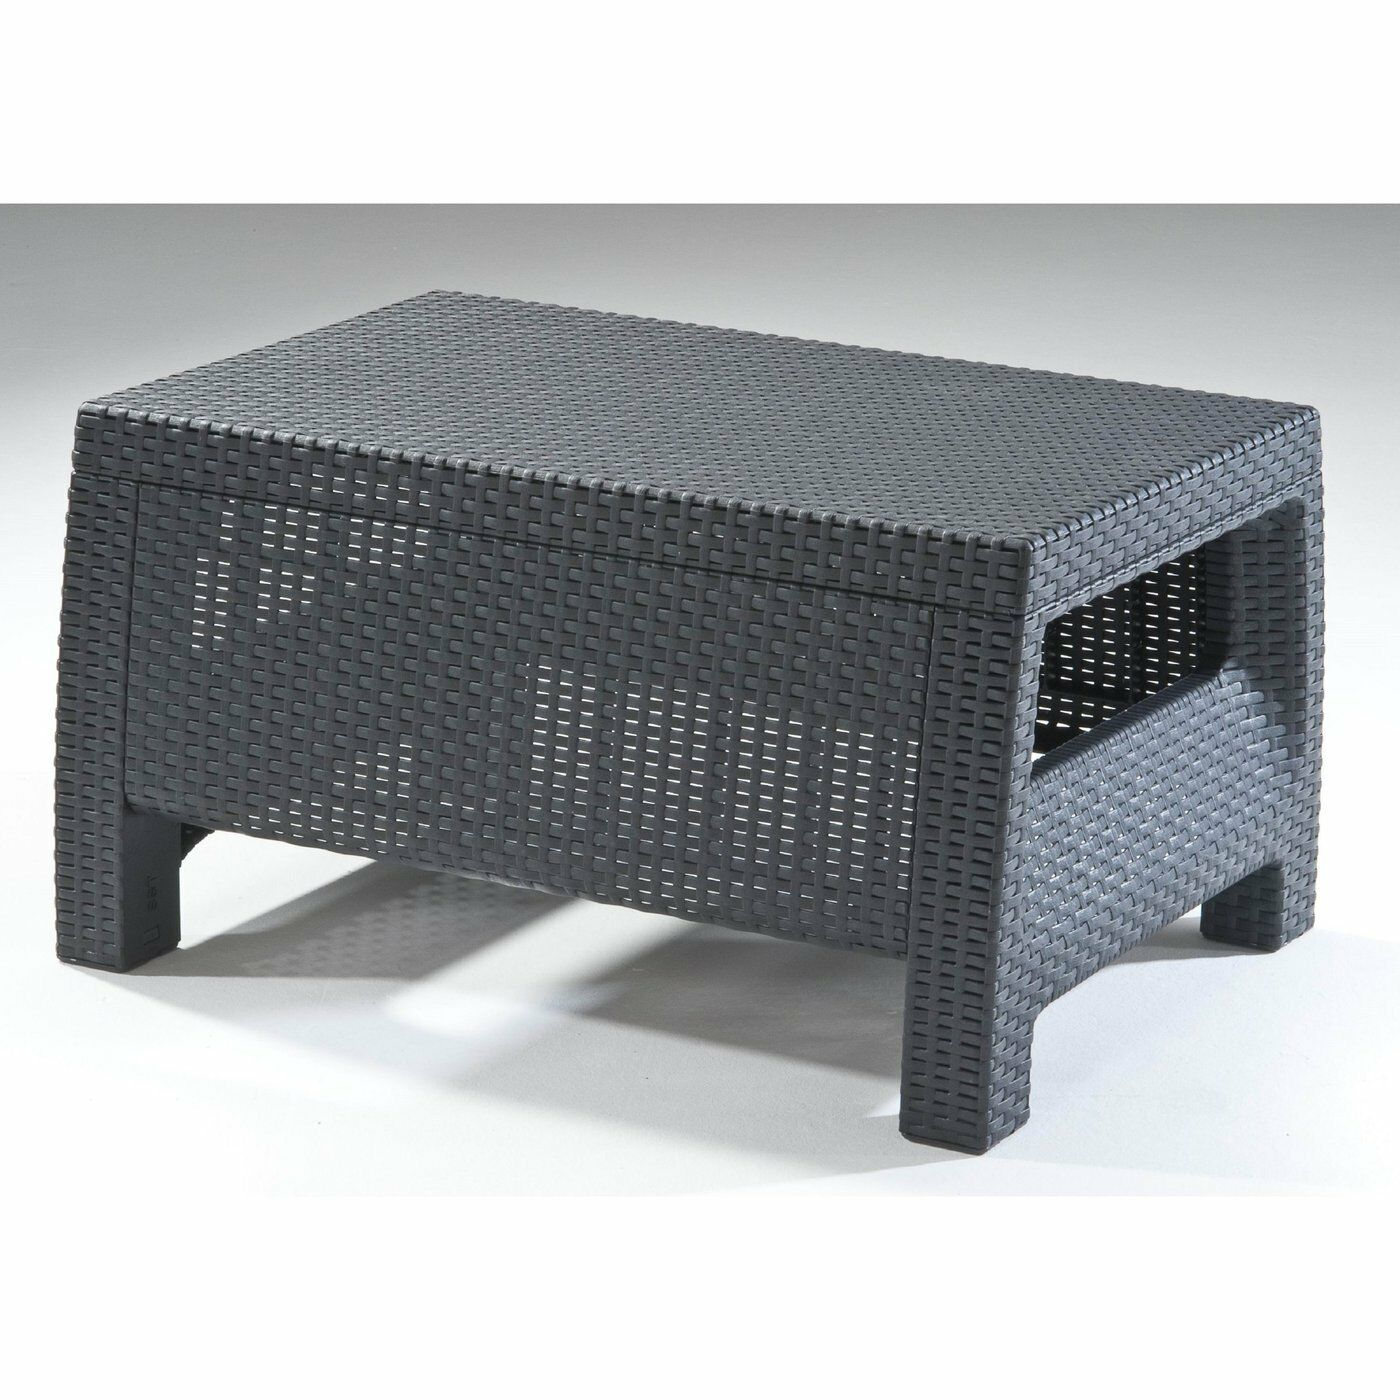 Bamboo Coffee Table Outdoor: Wicker Coffee Table Outdoor Patio Rattan Side End Deck